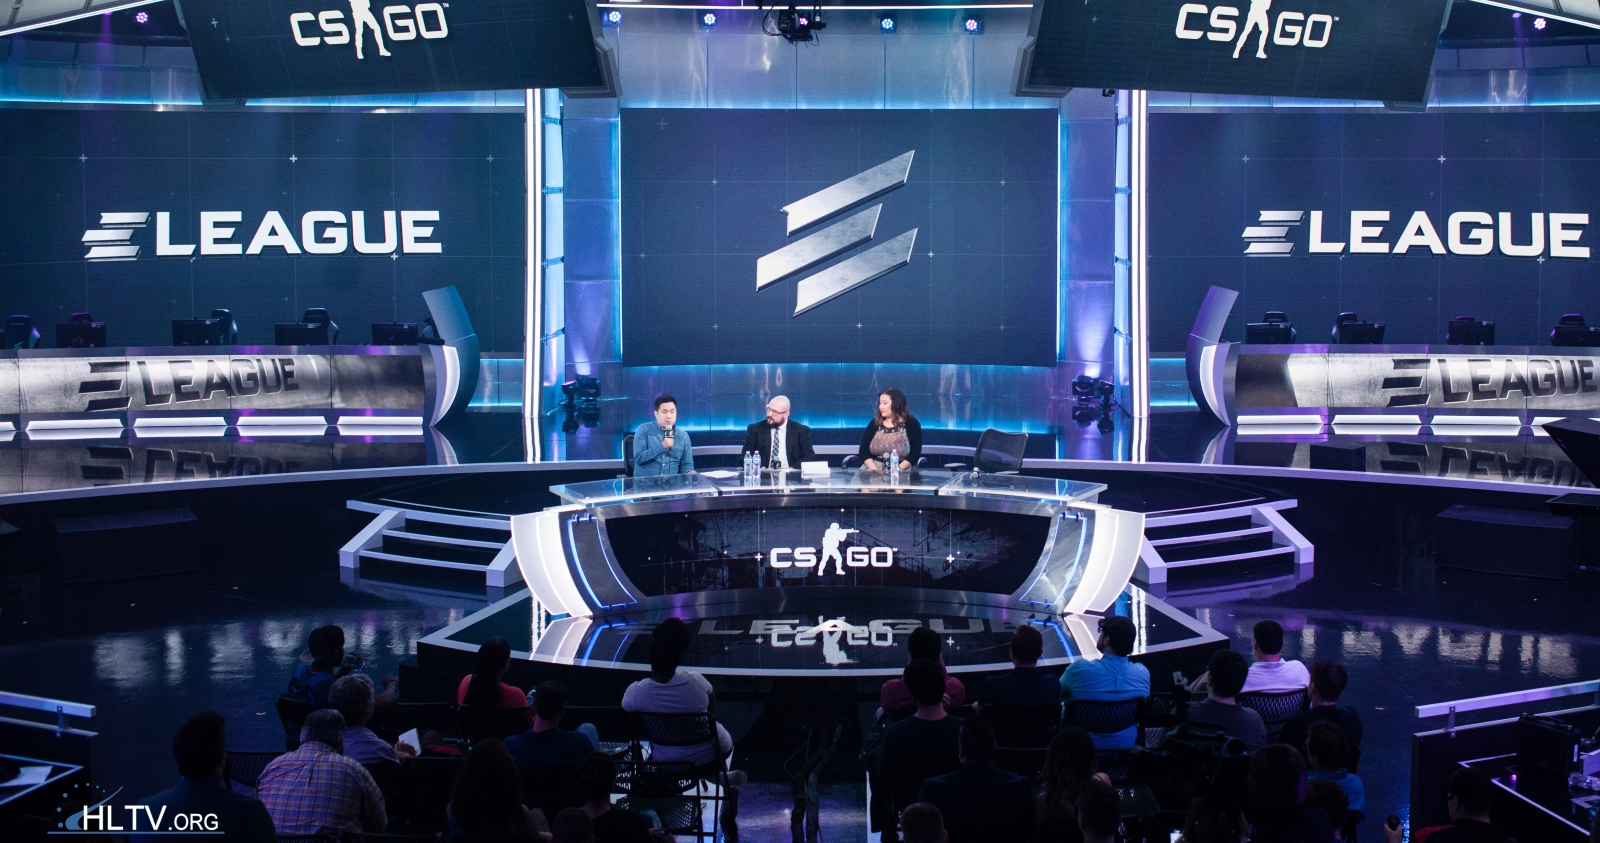 twistzz, csgo, eleague prijenos, eleague tv, csgo televizija